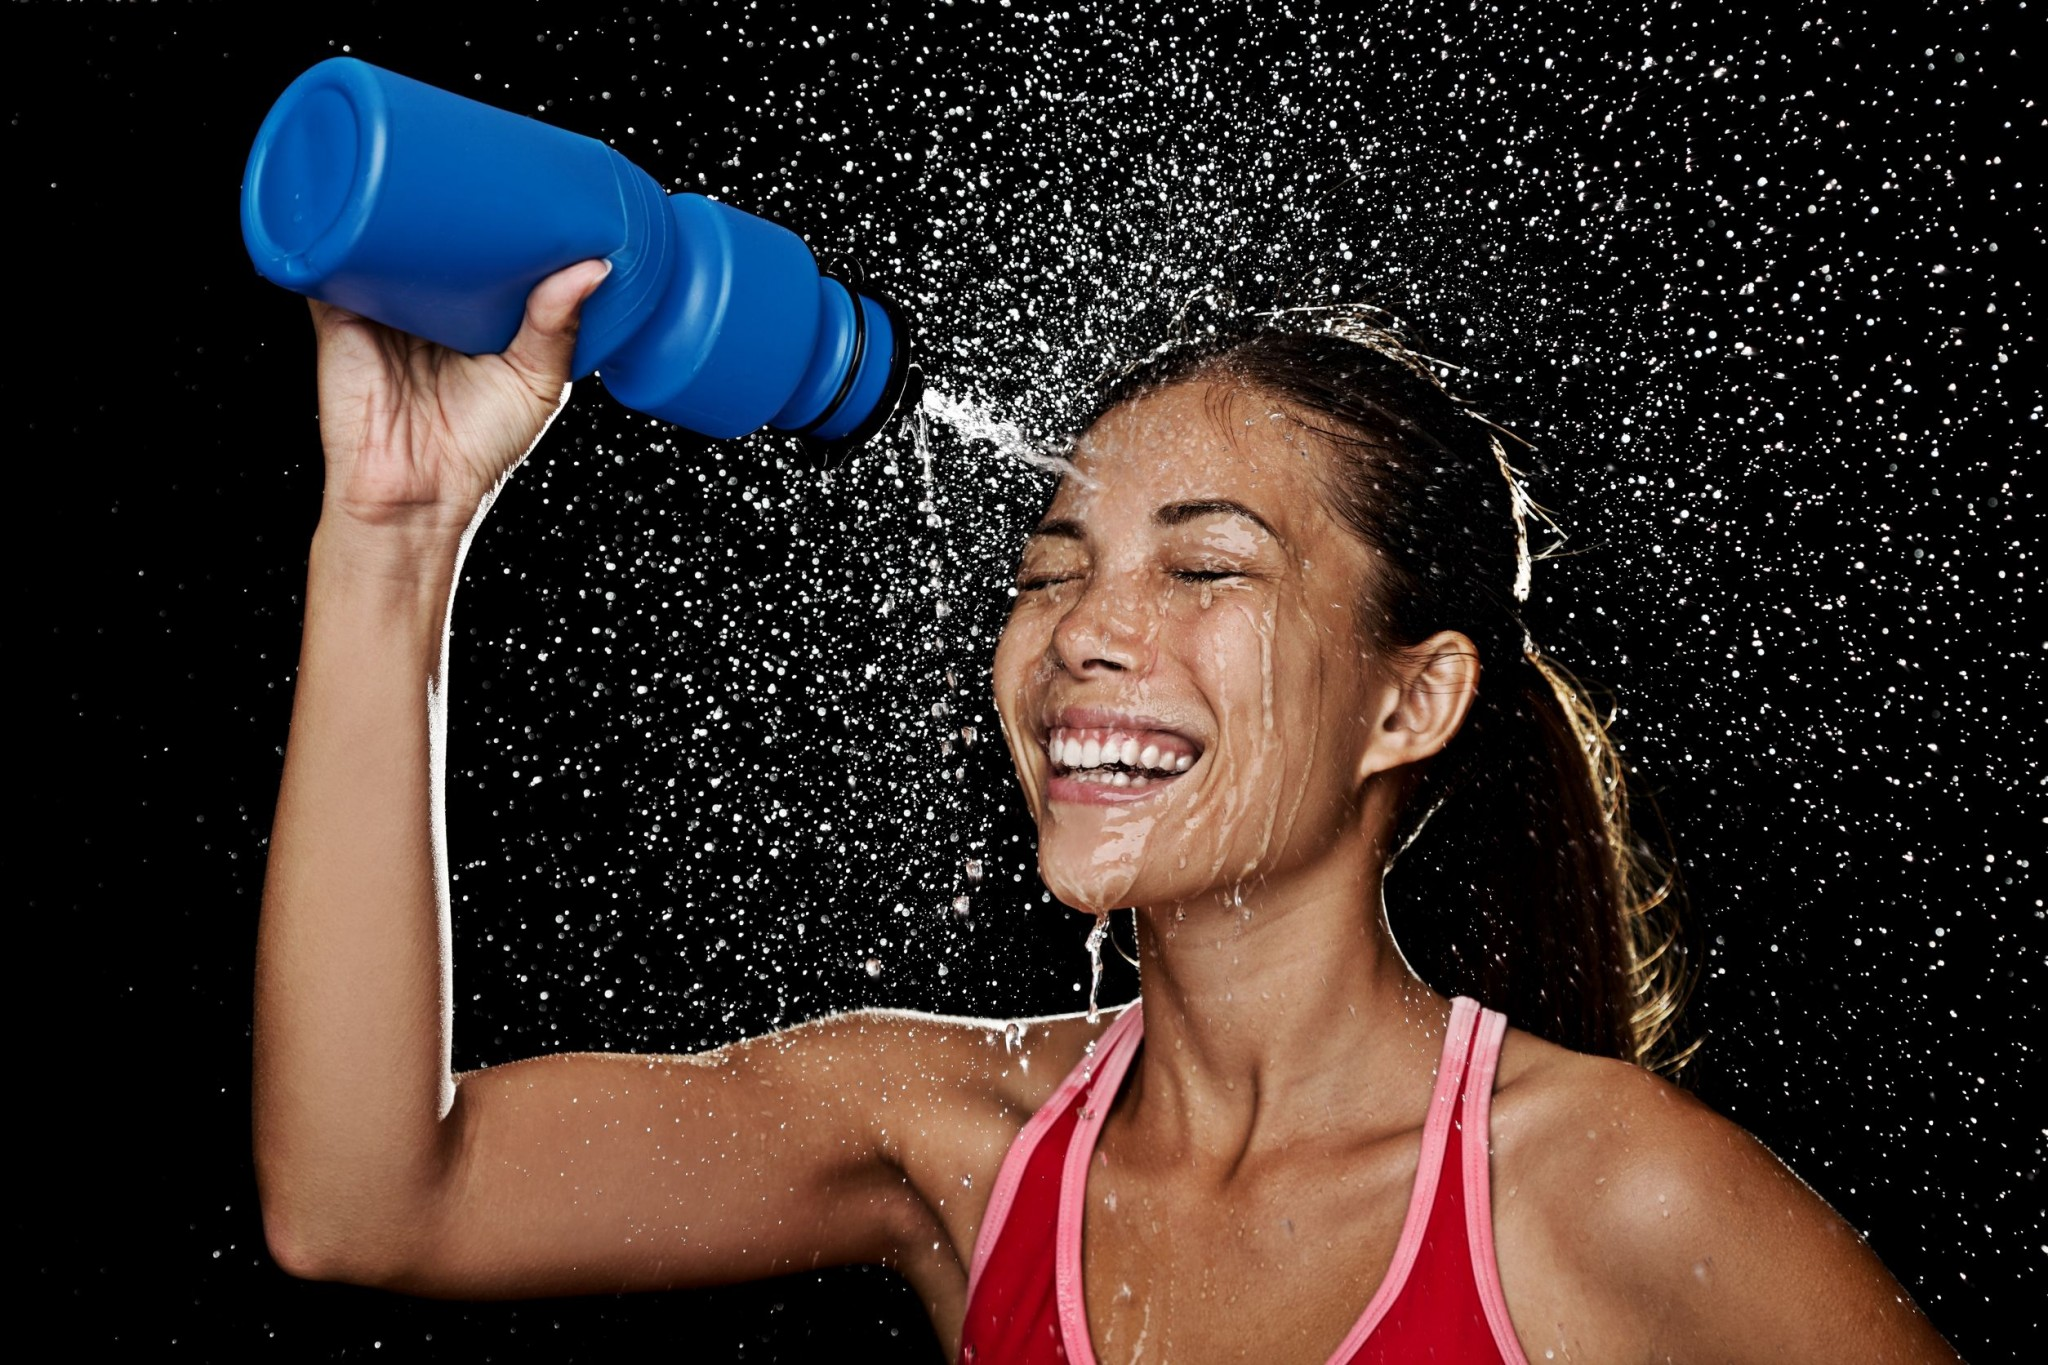 runner splashing water in her face